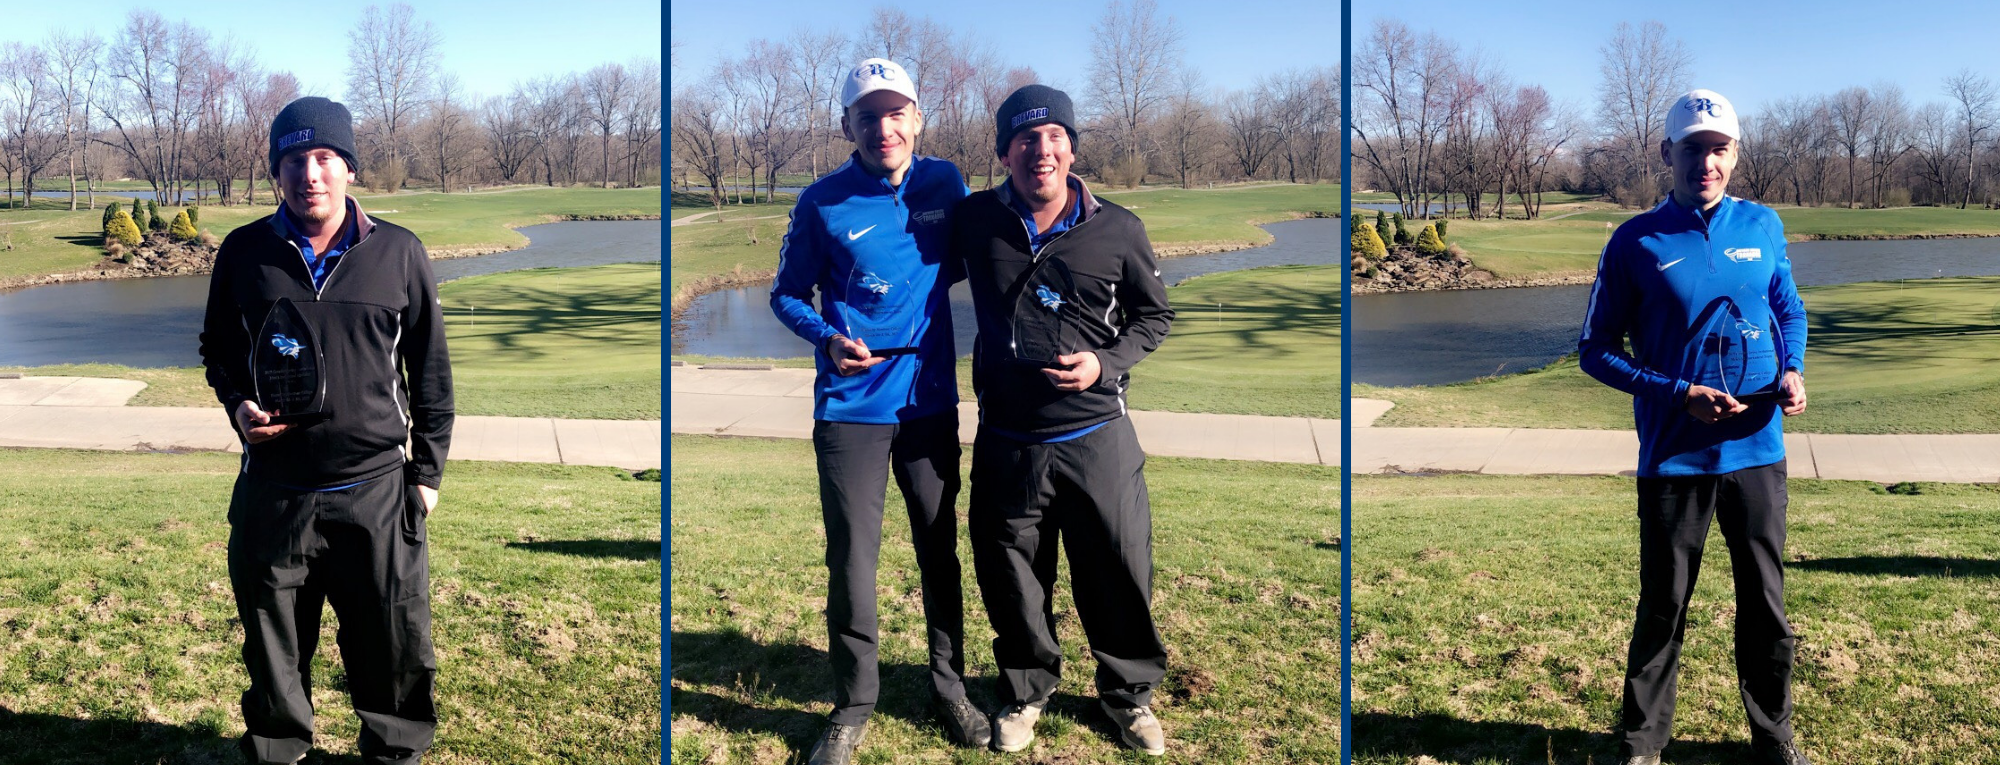 Brevard Garners Two Top-Three Finishes as Austin Fisher Wins, Thibault Tranchant Places Third in Cavalier Spring Invitational